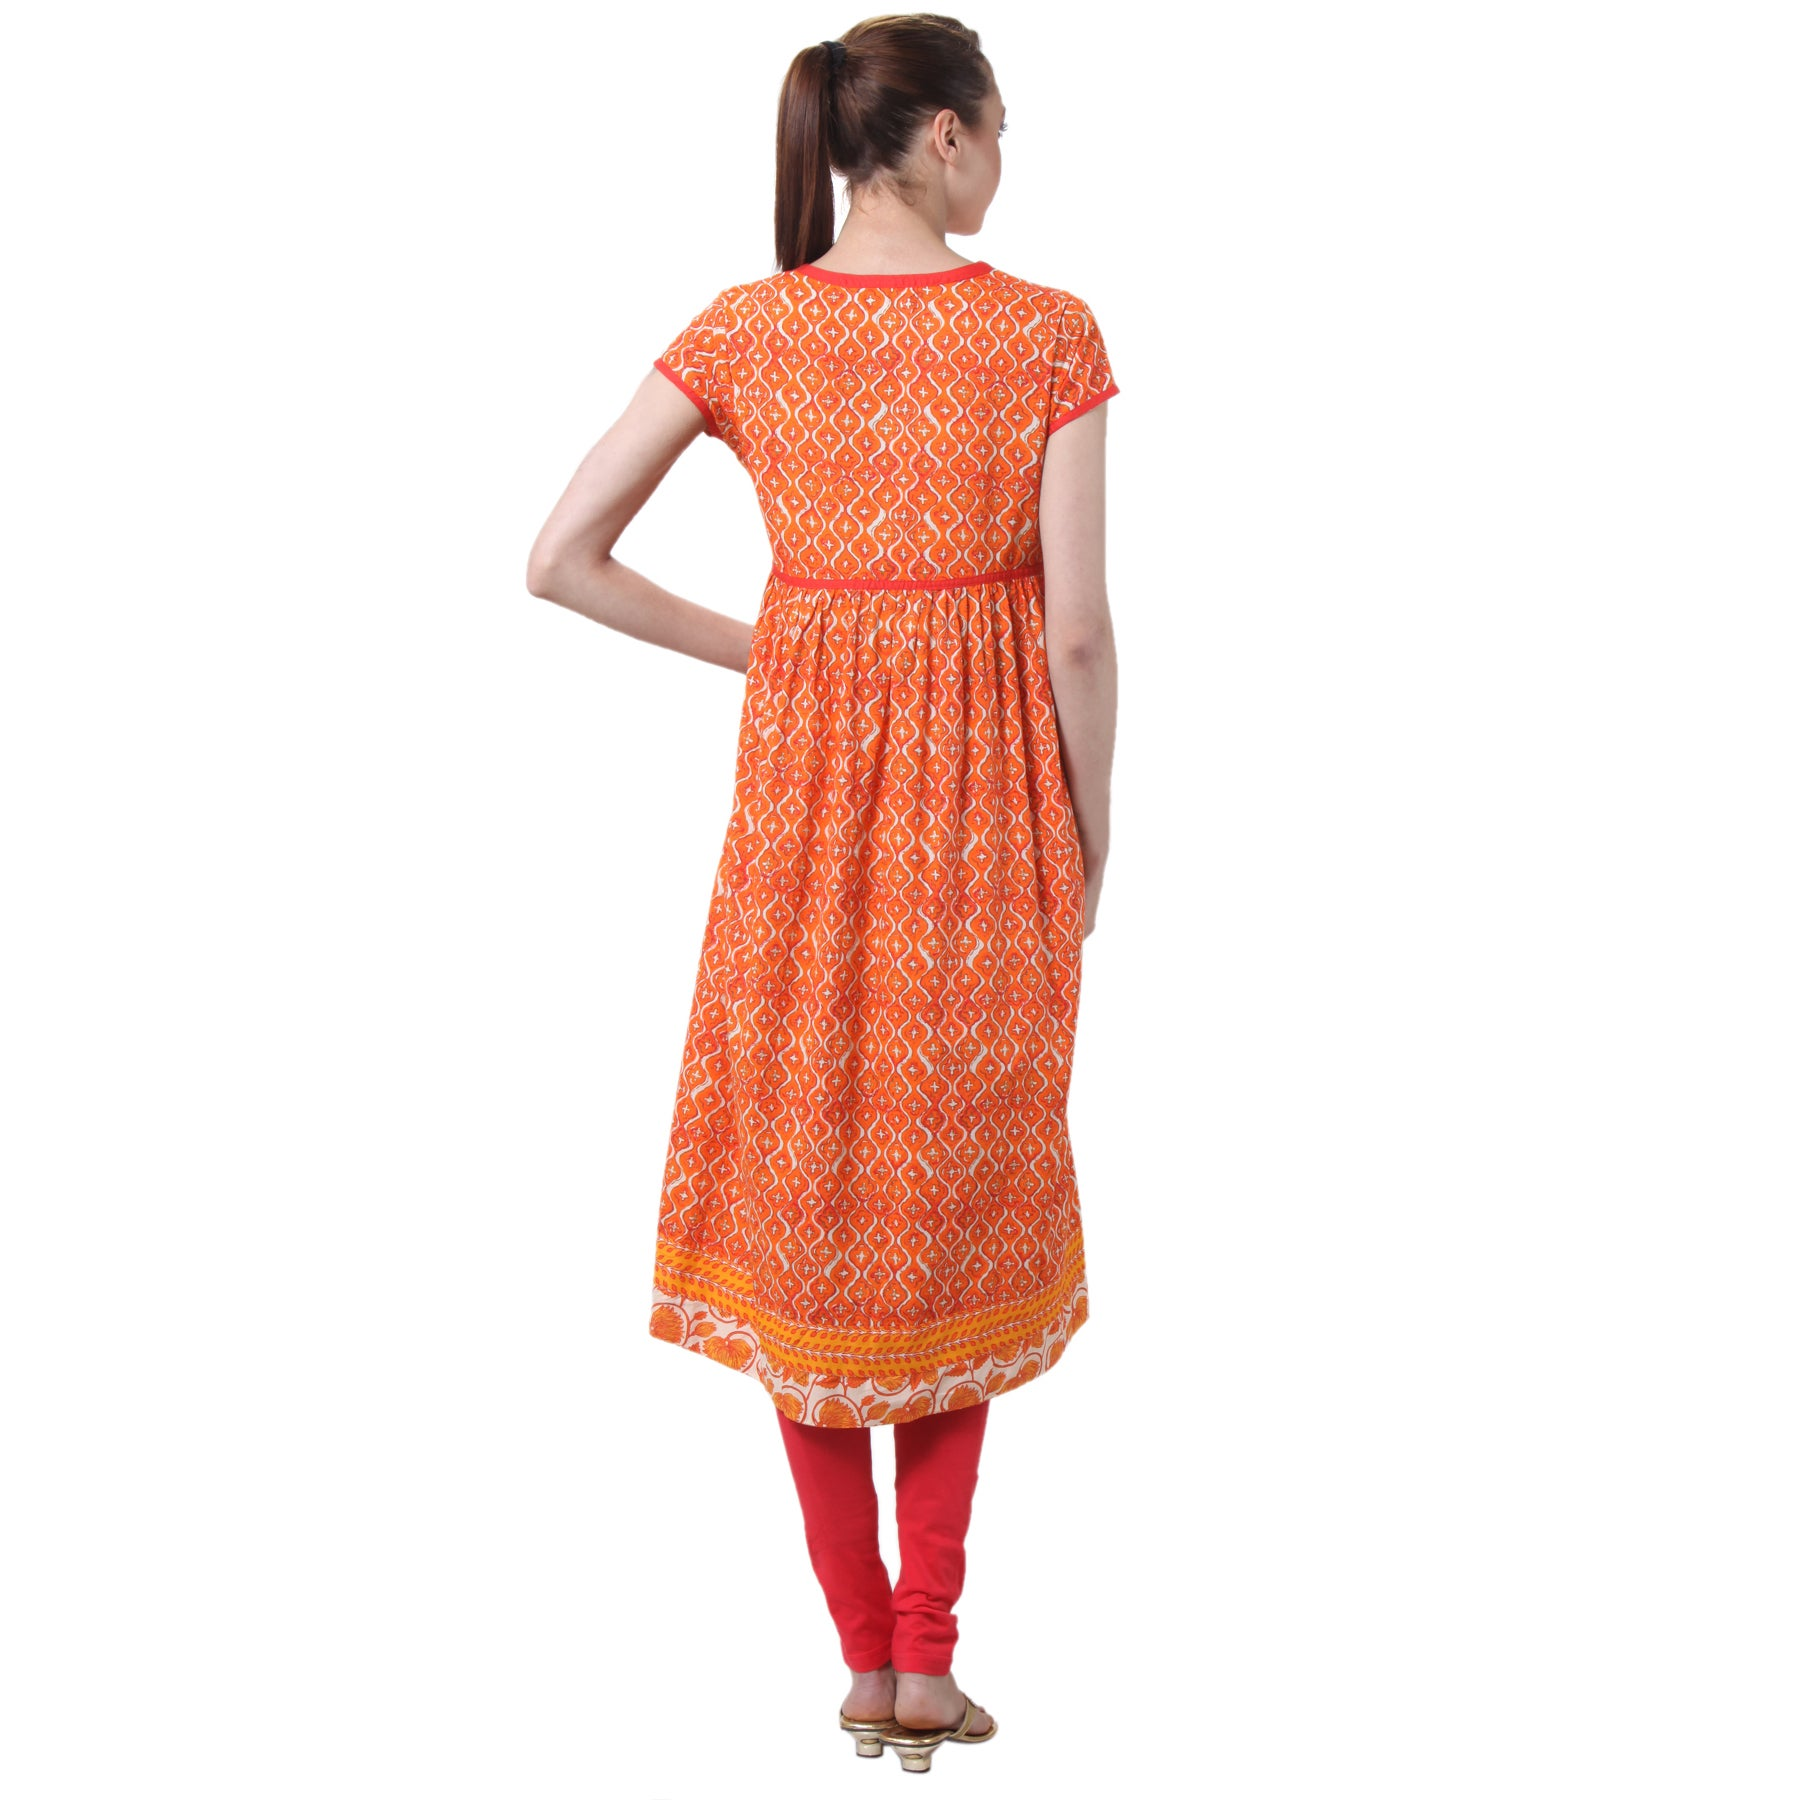 8896105cd31 Shop Handmade In-Sattva Women s Indian Contrast Prints Kurta Tunic (India)  - Free Shipping On Orders Over  45 - Overstock - 10341992